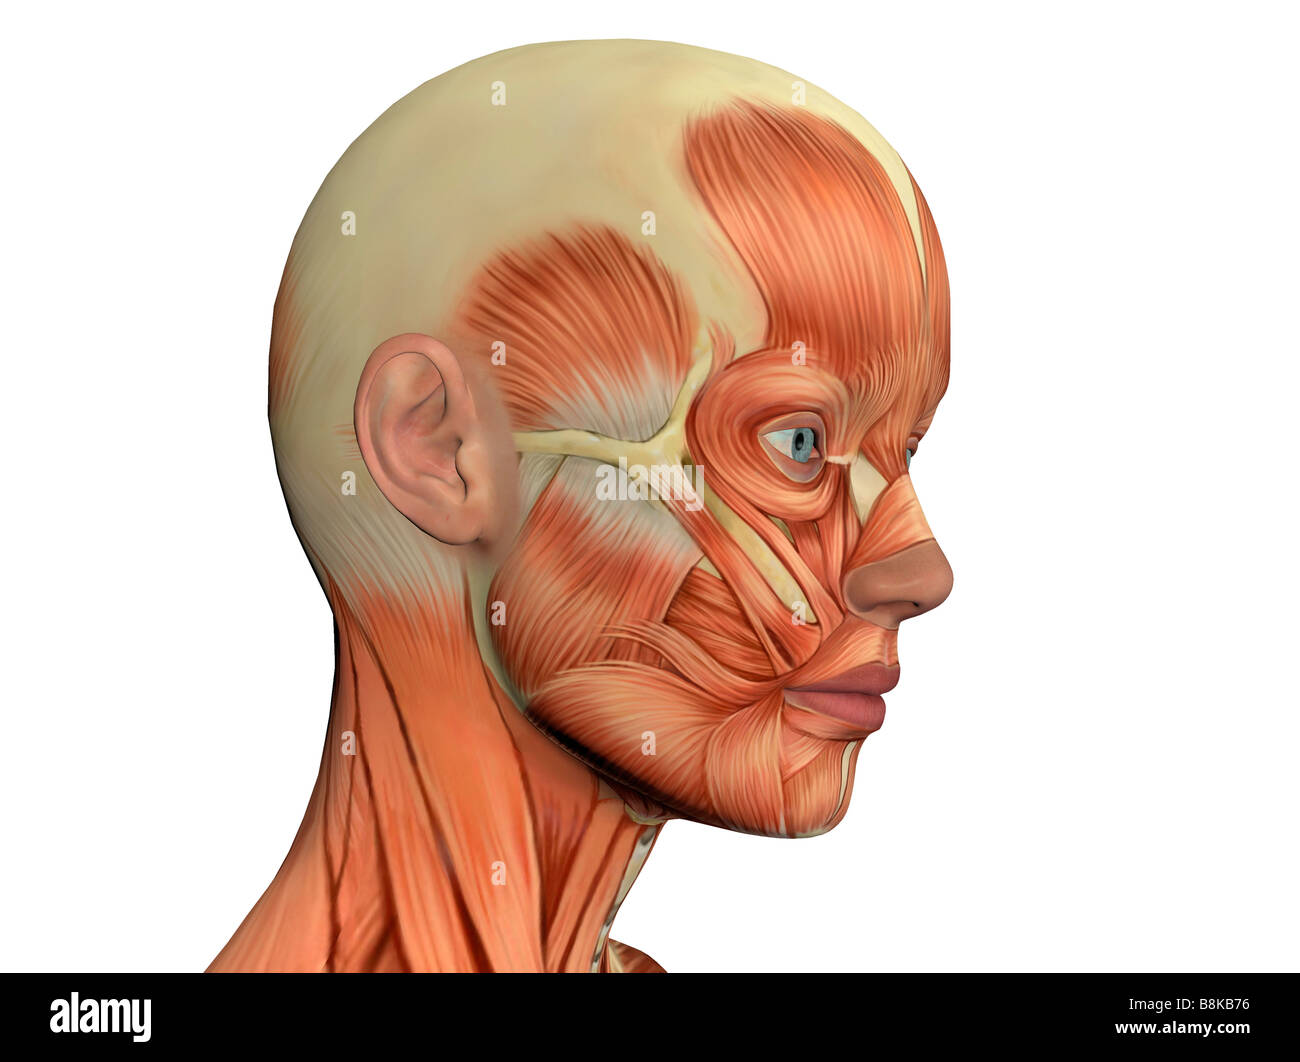 Female Facial Muscles Illustration Stock Photos & Female Facial ...